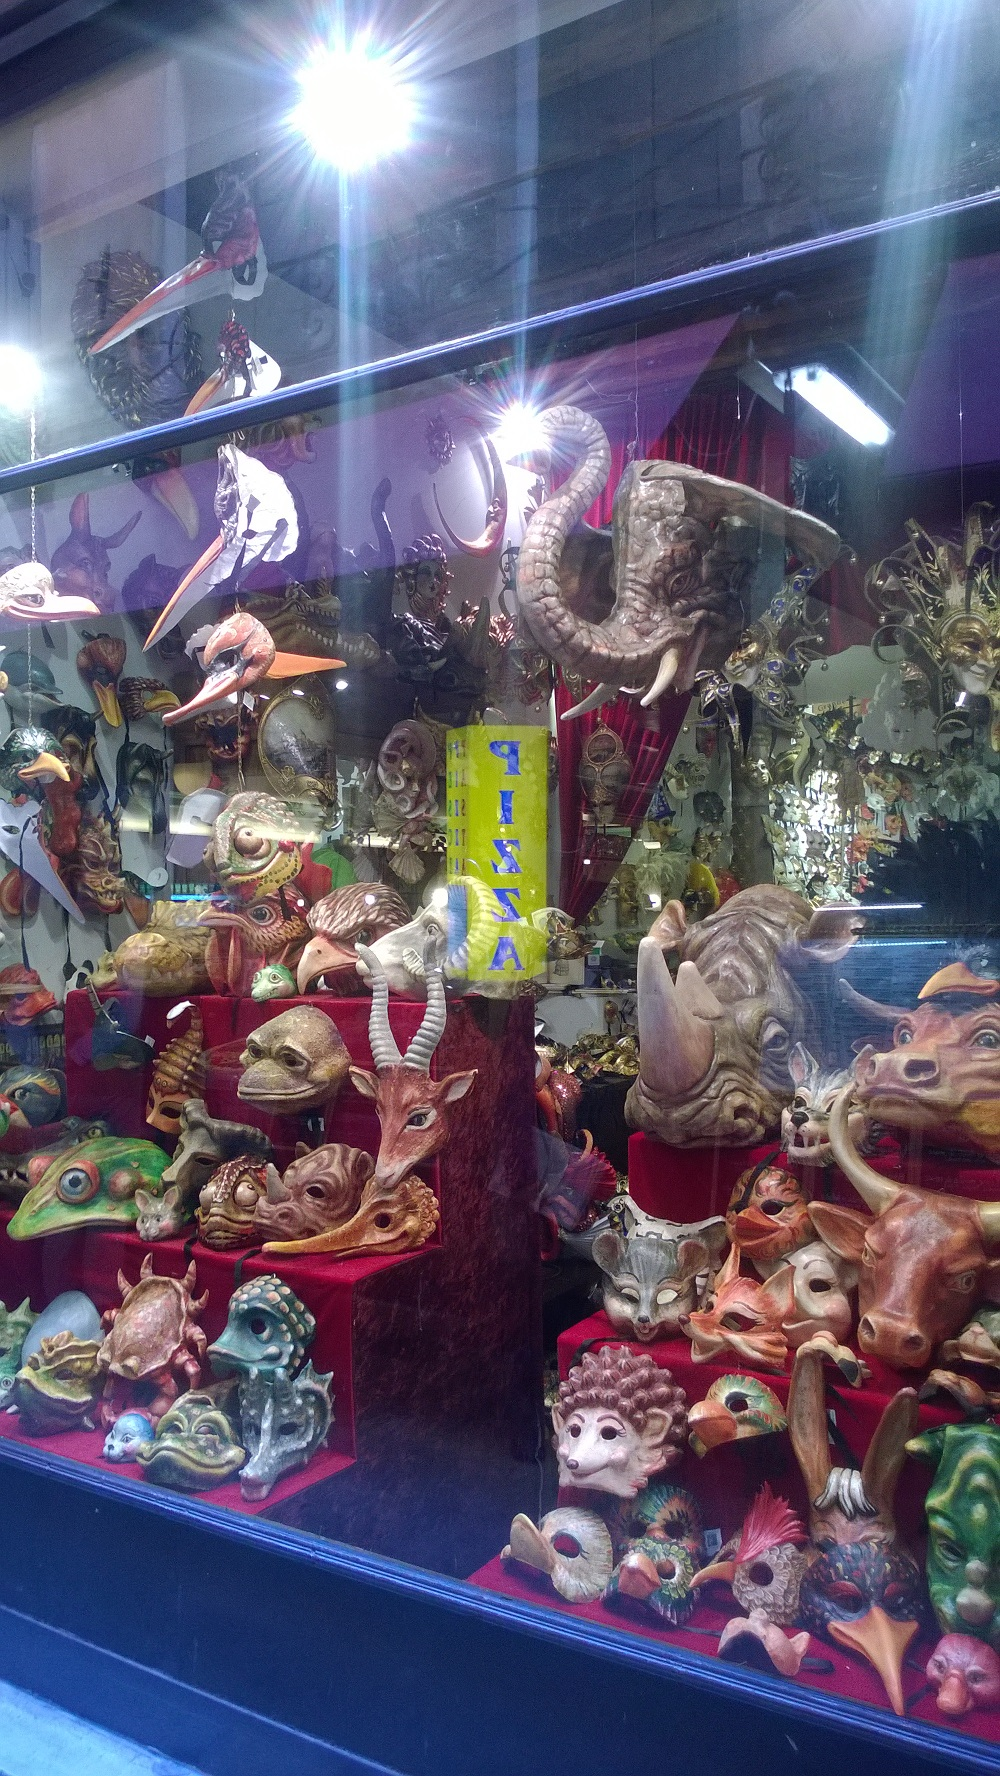 Even the Venetian animal masks are ready for a snack (see the hidden sign)